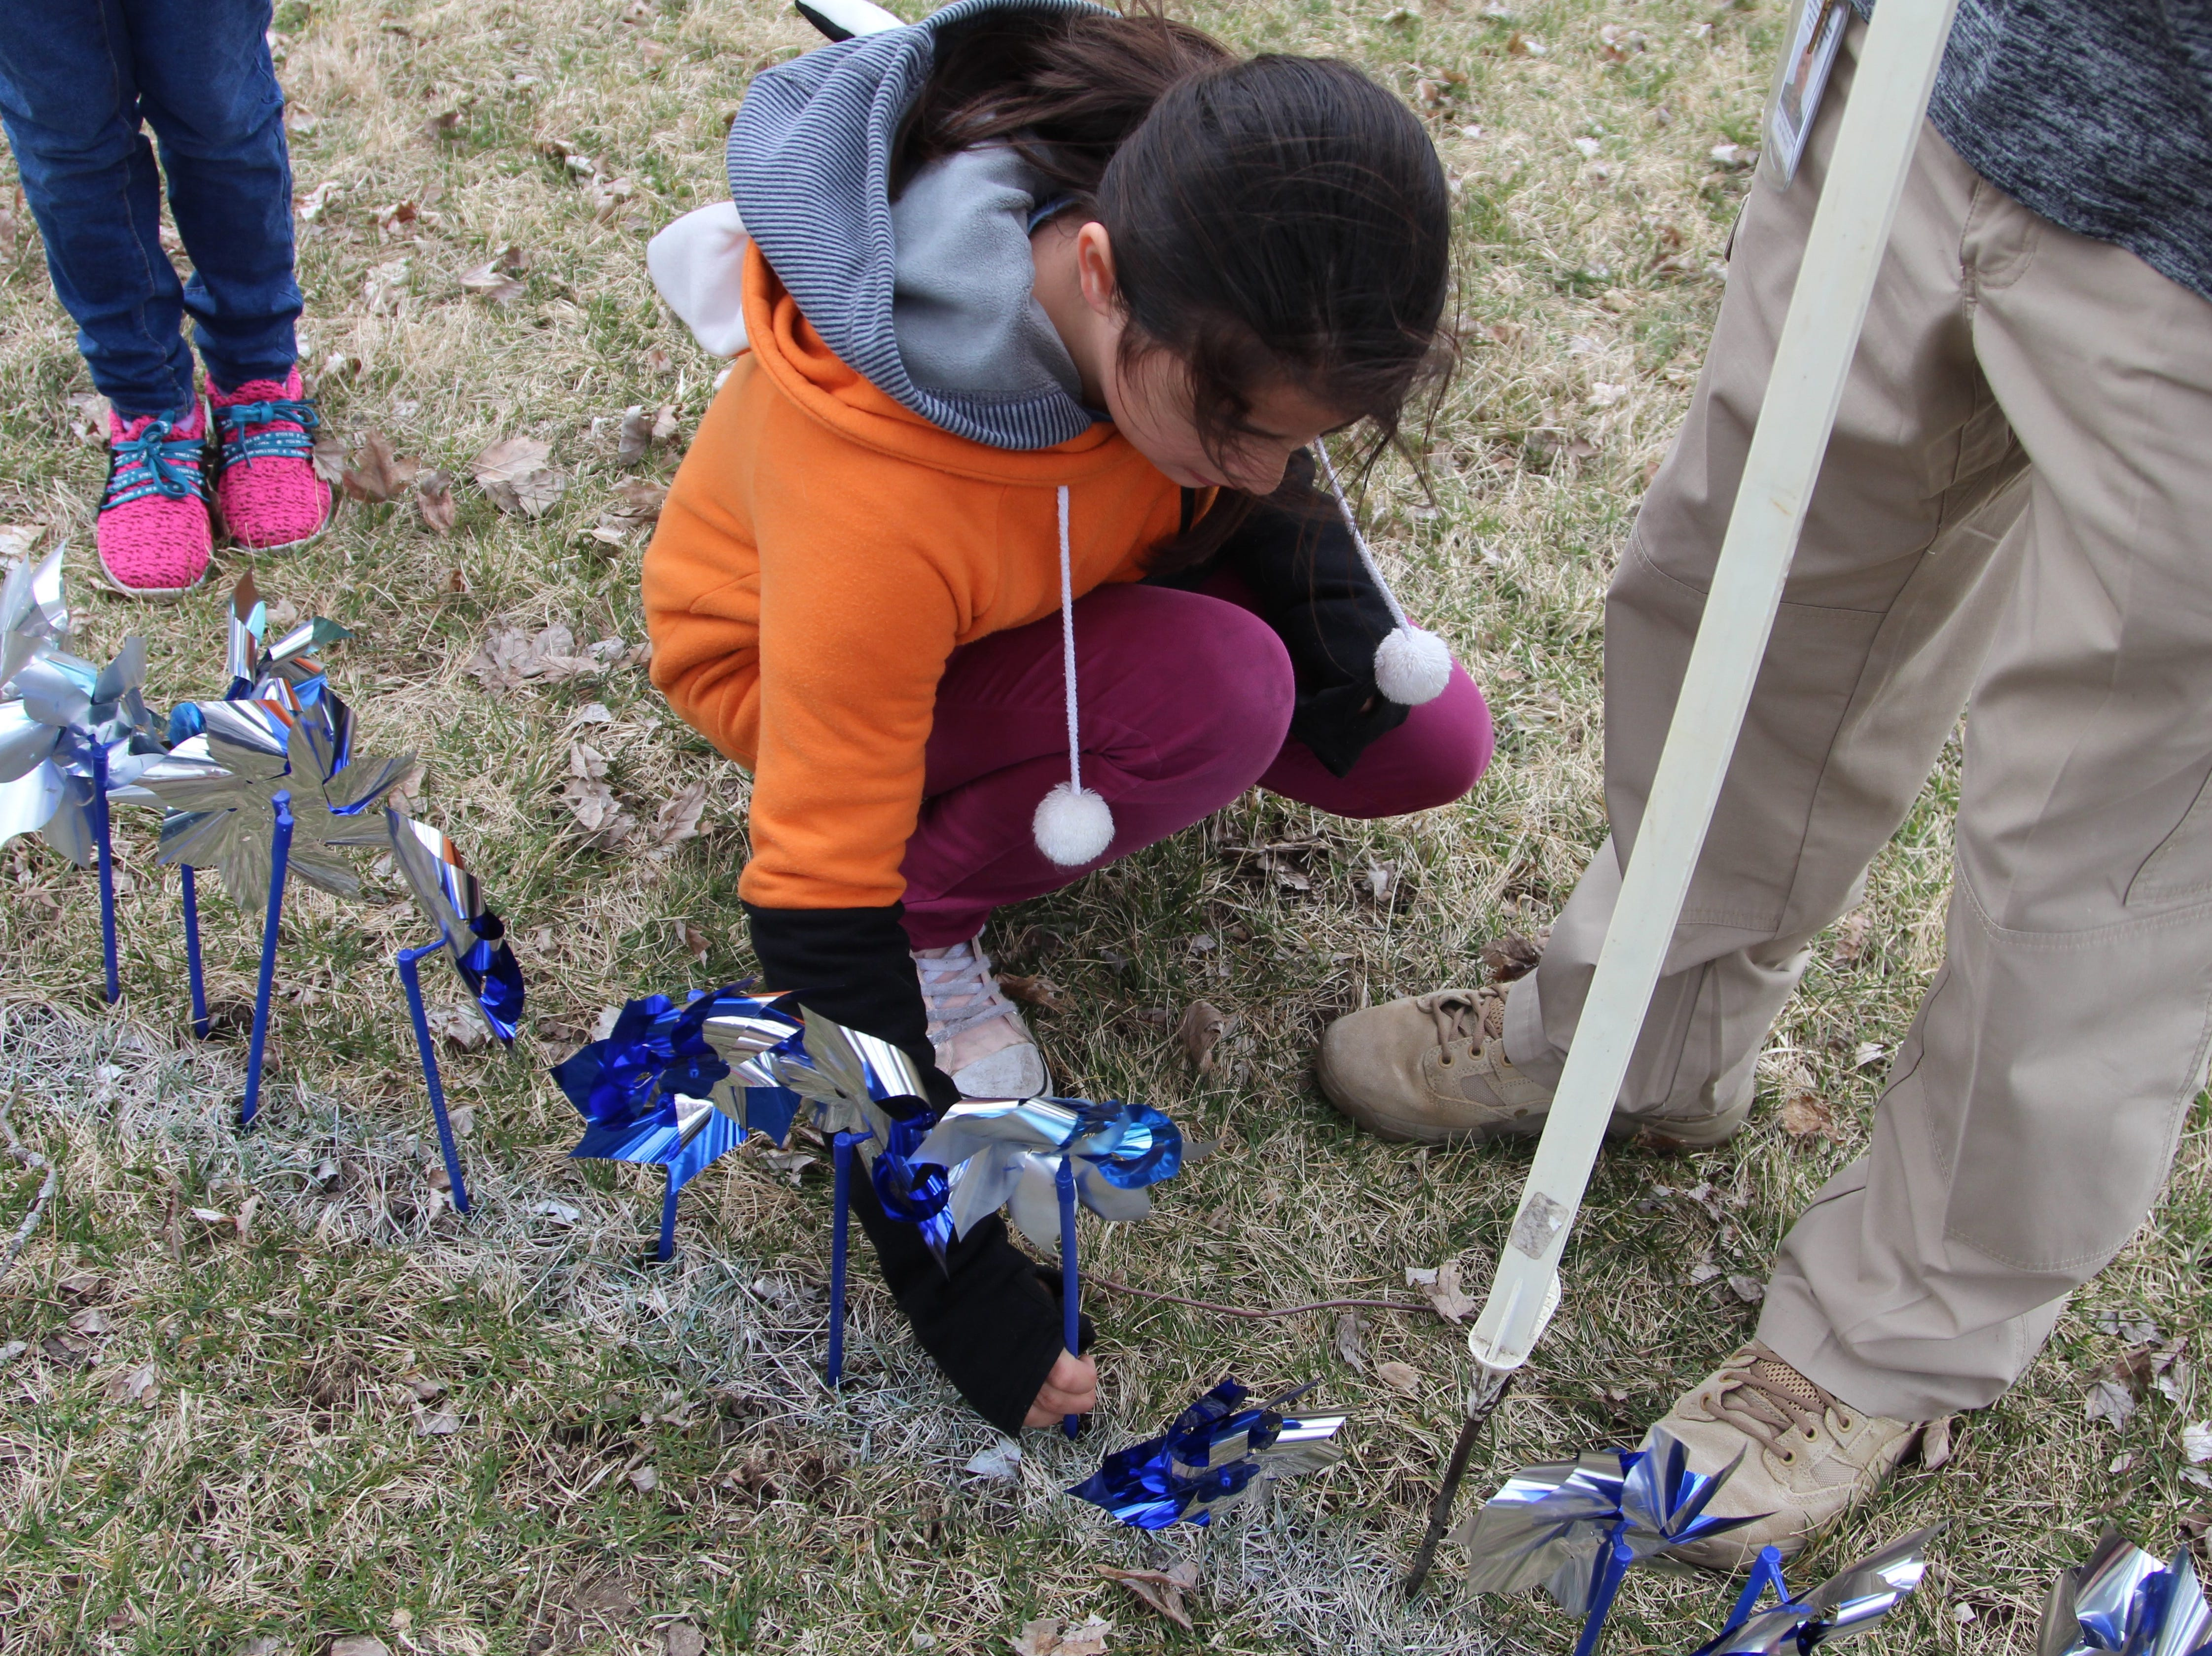 Valerie Riegel with Liberty Leaders helps plant pinwheels around a flower bed at Marion County Children services on Thursday.